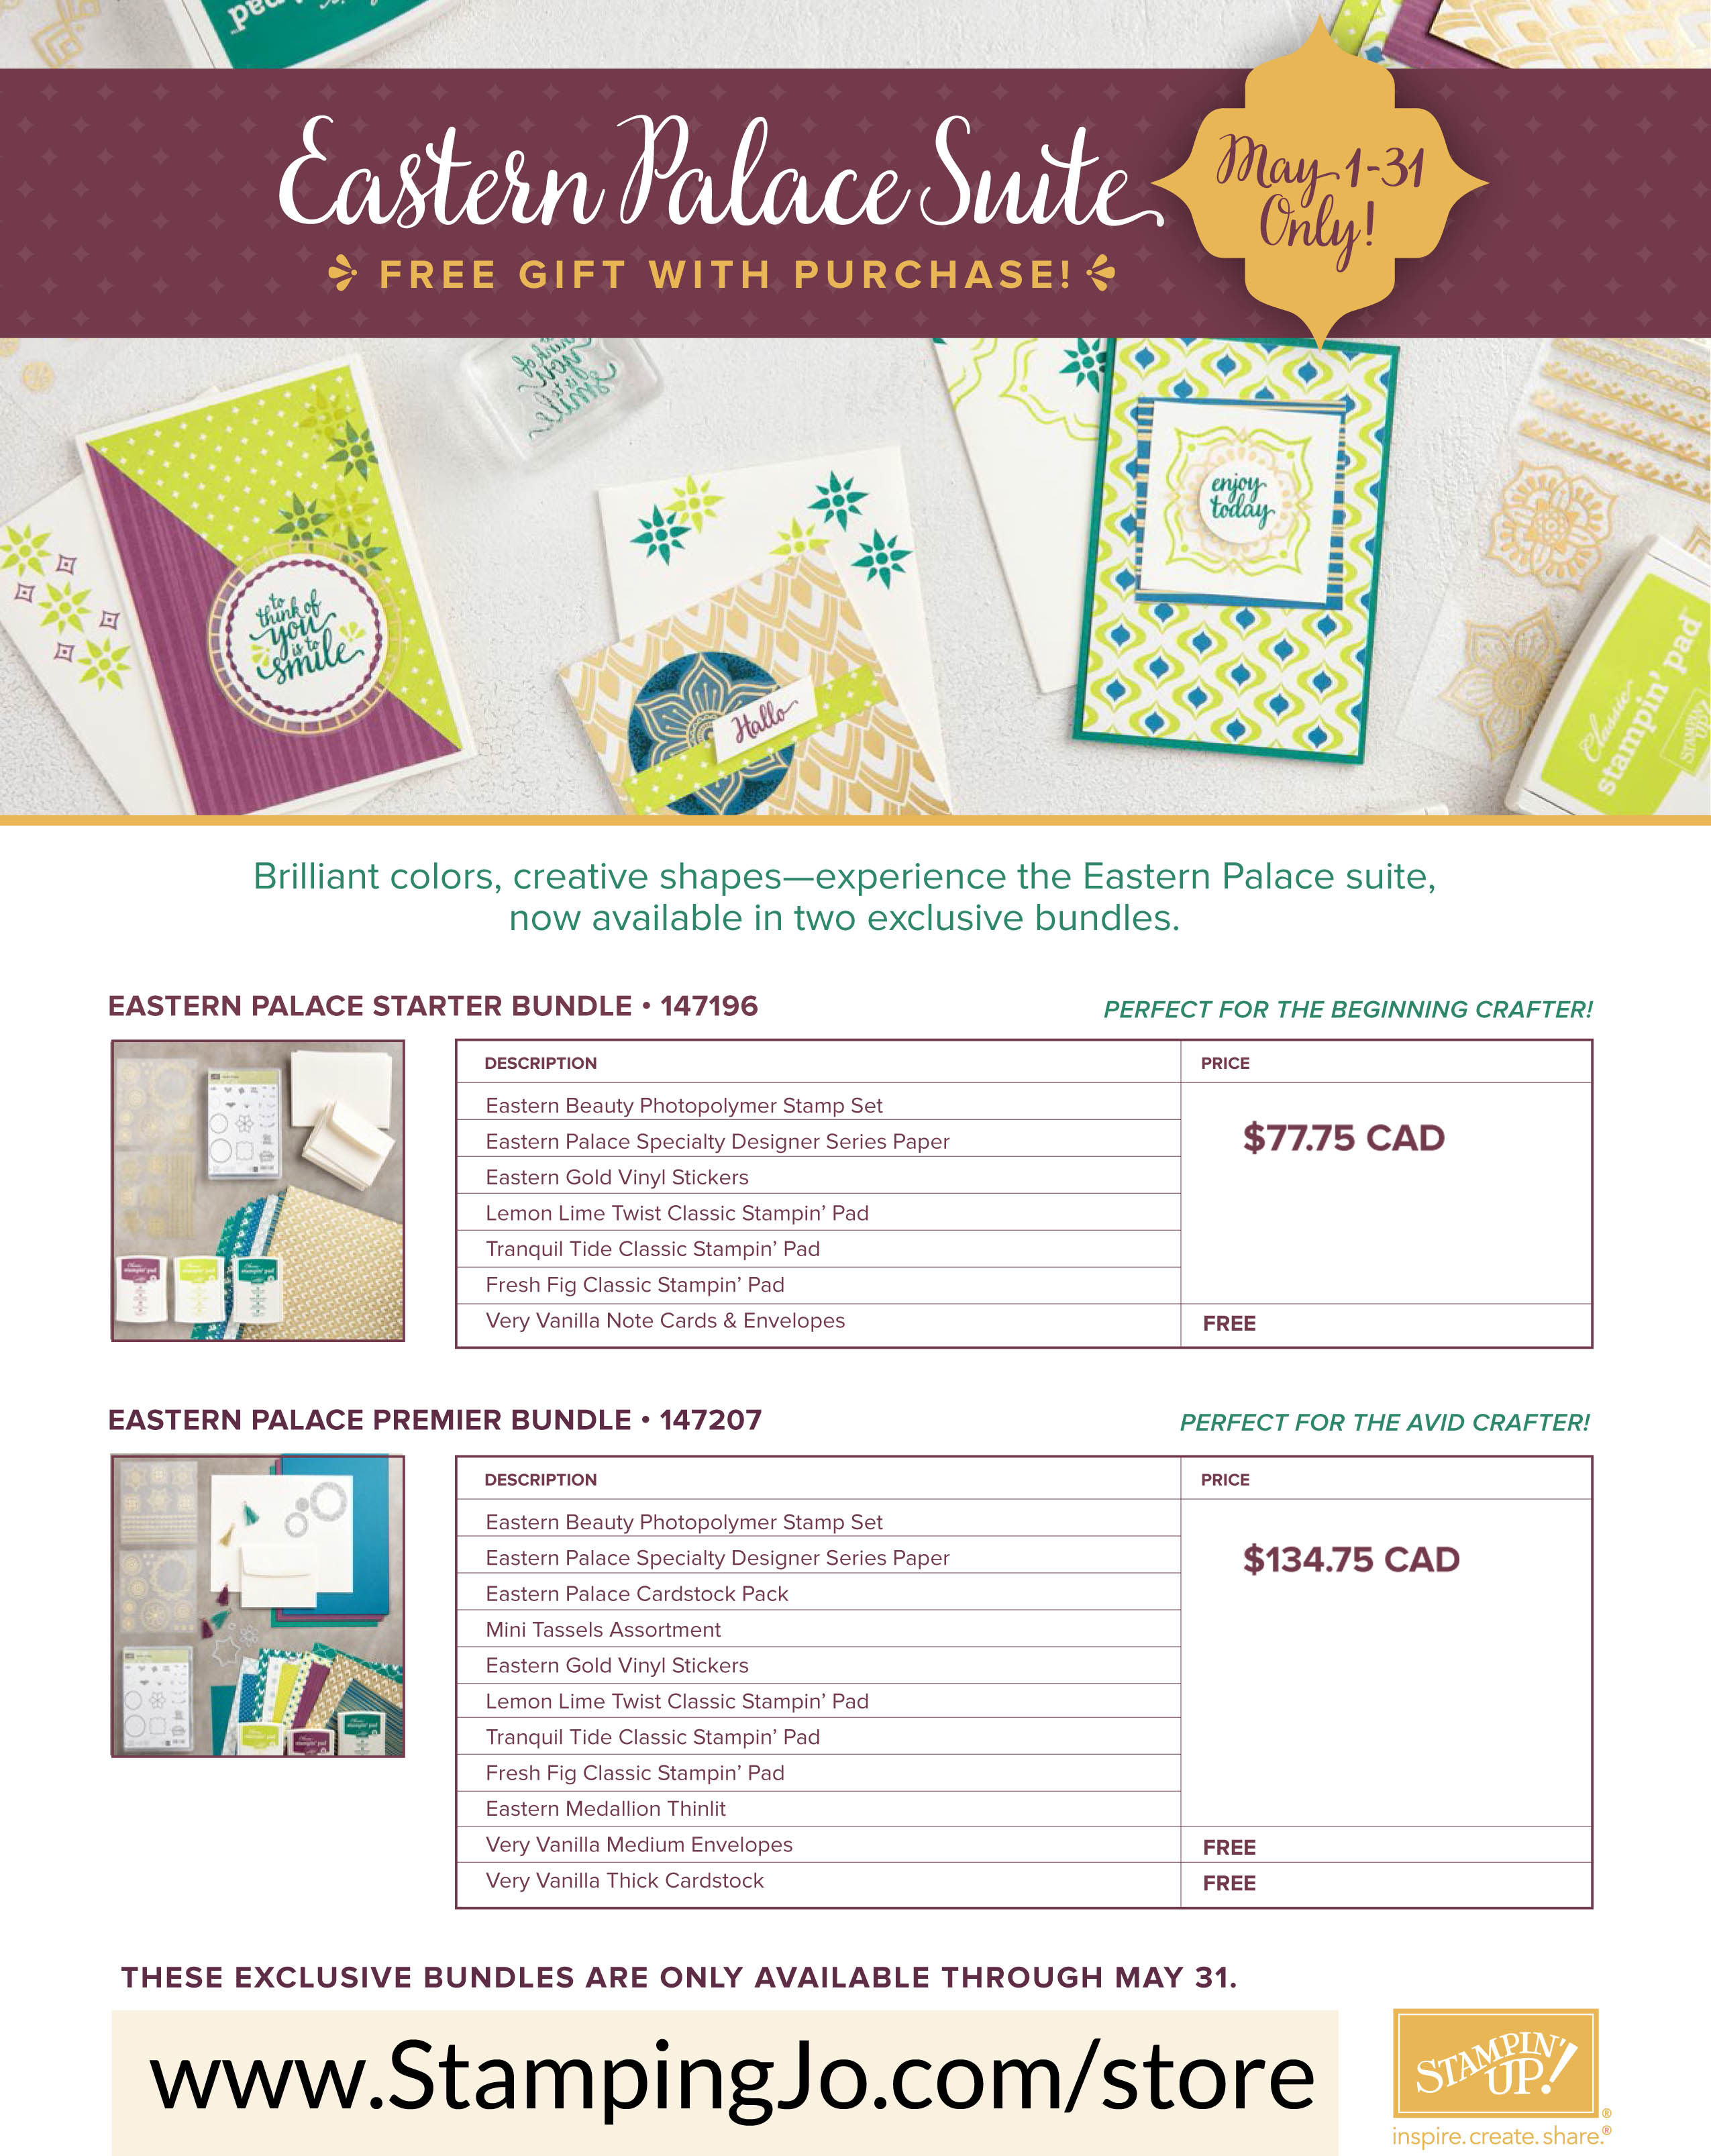 Eastern Palace Suite, Stampin Up, Limited Time Bundle offers with FREE Gift!